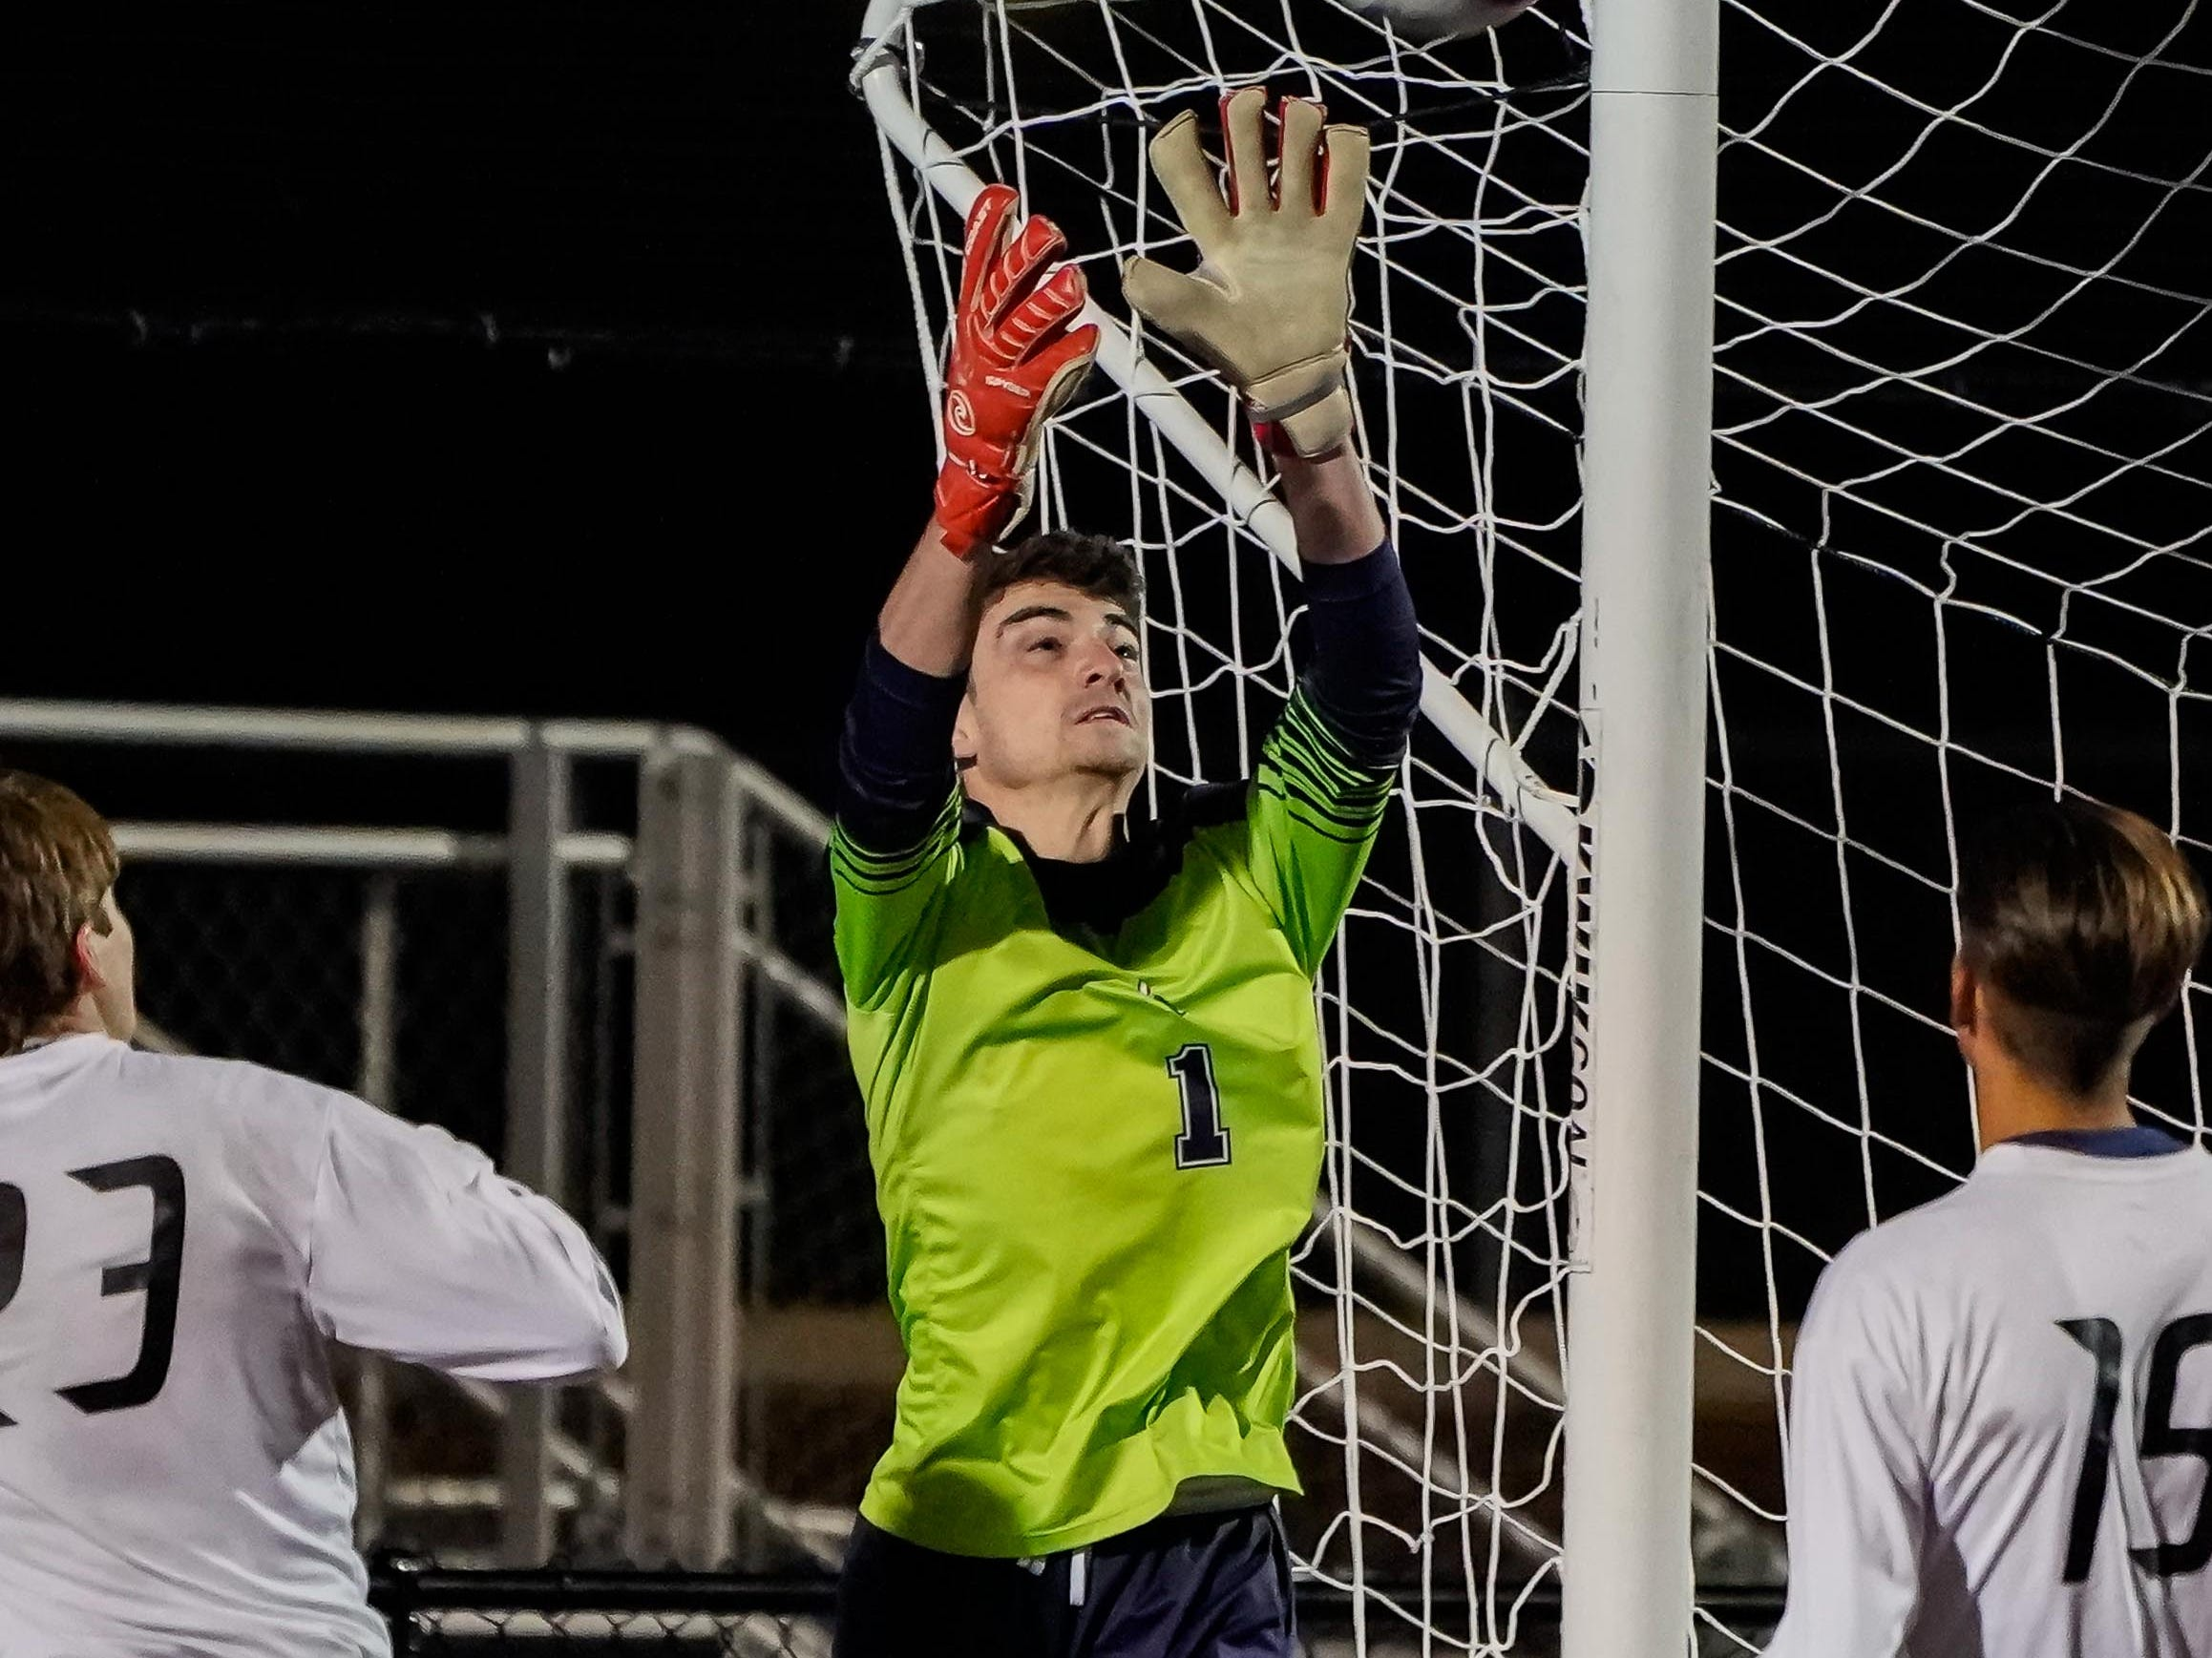 Lewisburg keeper Jason Hoffman (1) makes a save against Long Beach during the MHSAA 5A Boys Soccer Championships held at Brandon High School in Brandon, MS, Saturday February 9, 2019.(Bob Smith-For The Clarion Ledger)